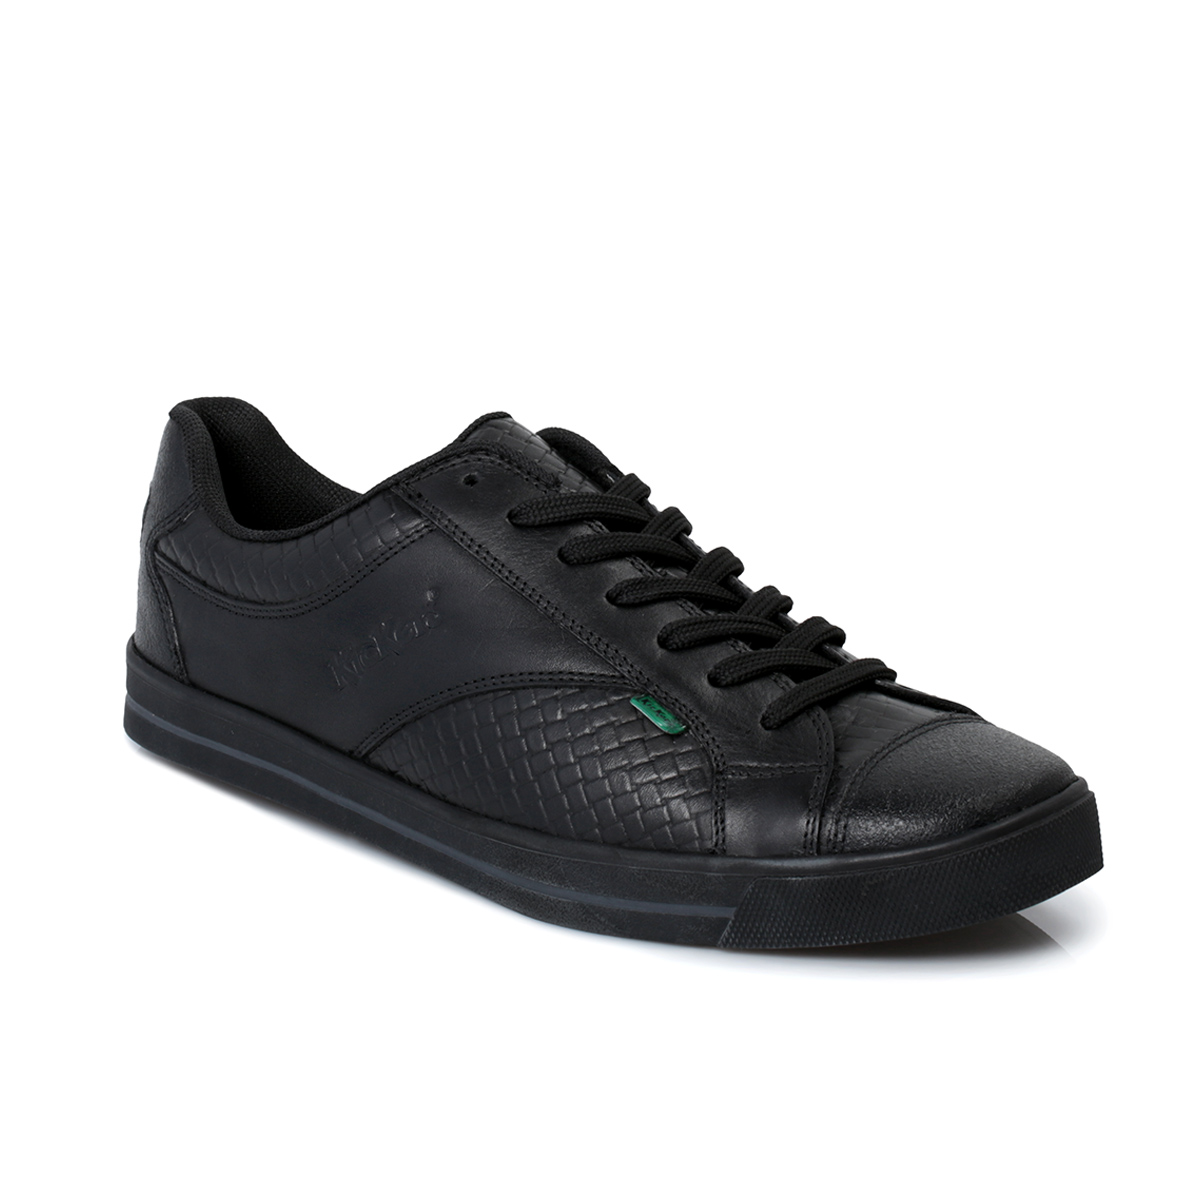 kickers woly lace up black leather mens trainers shoes